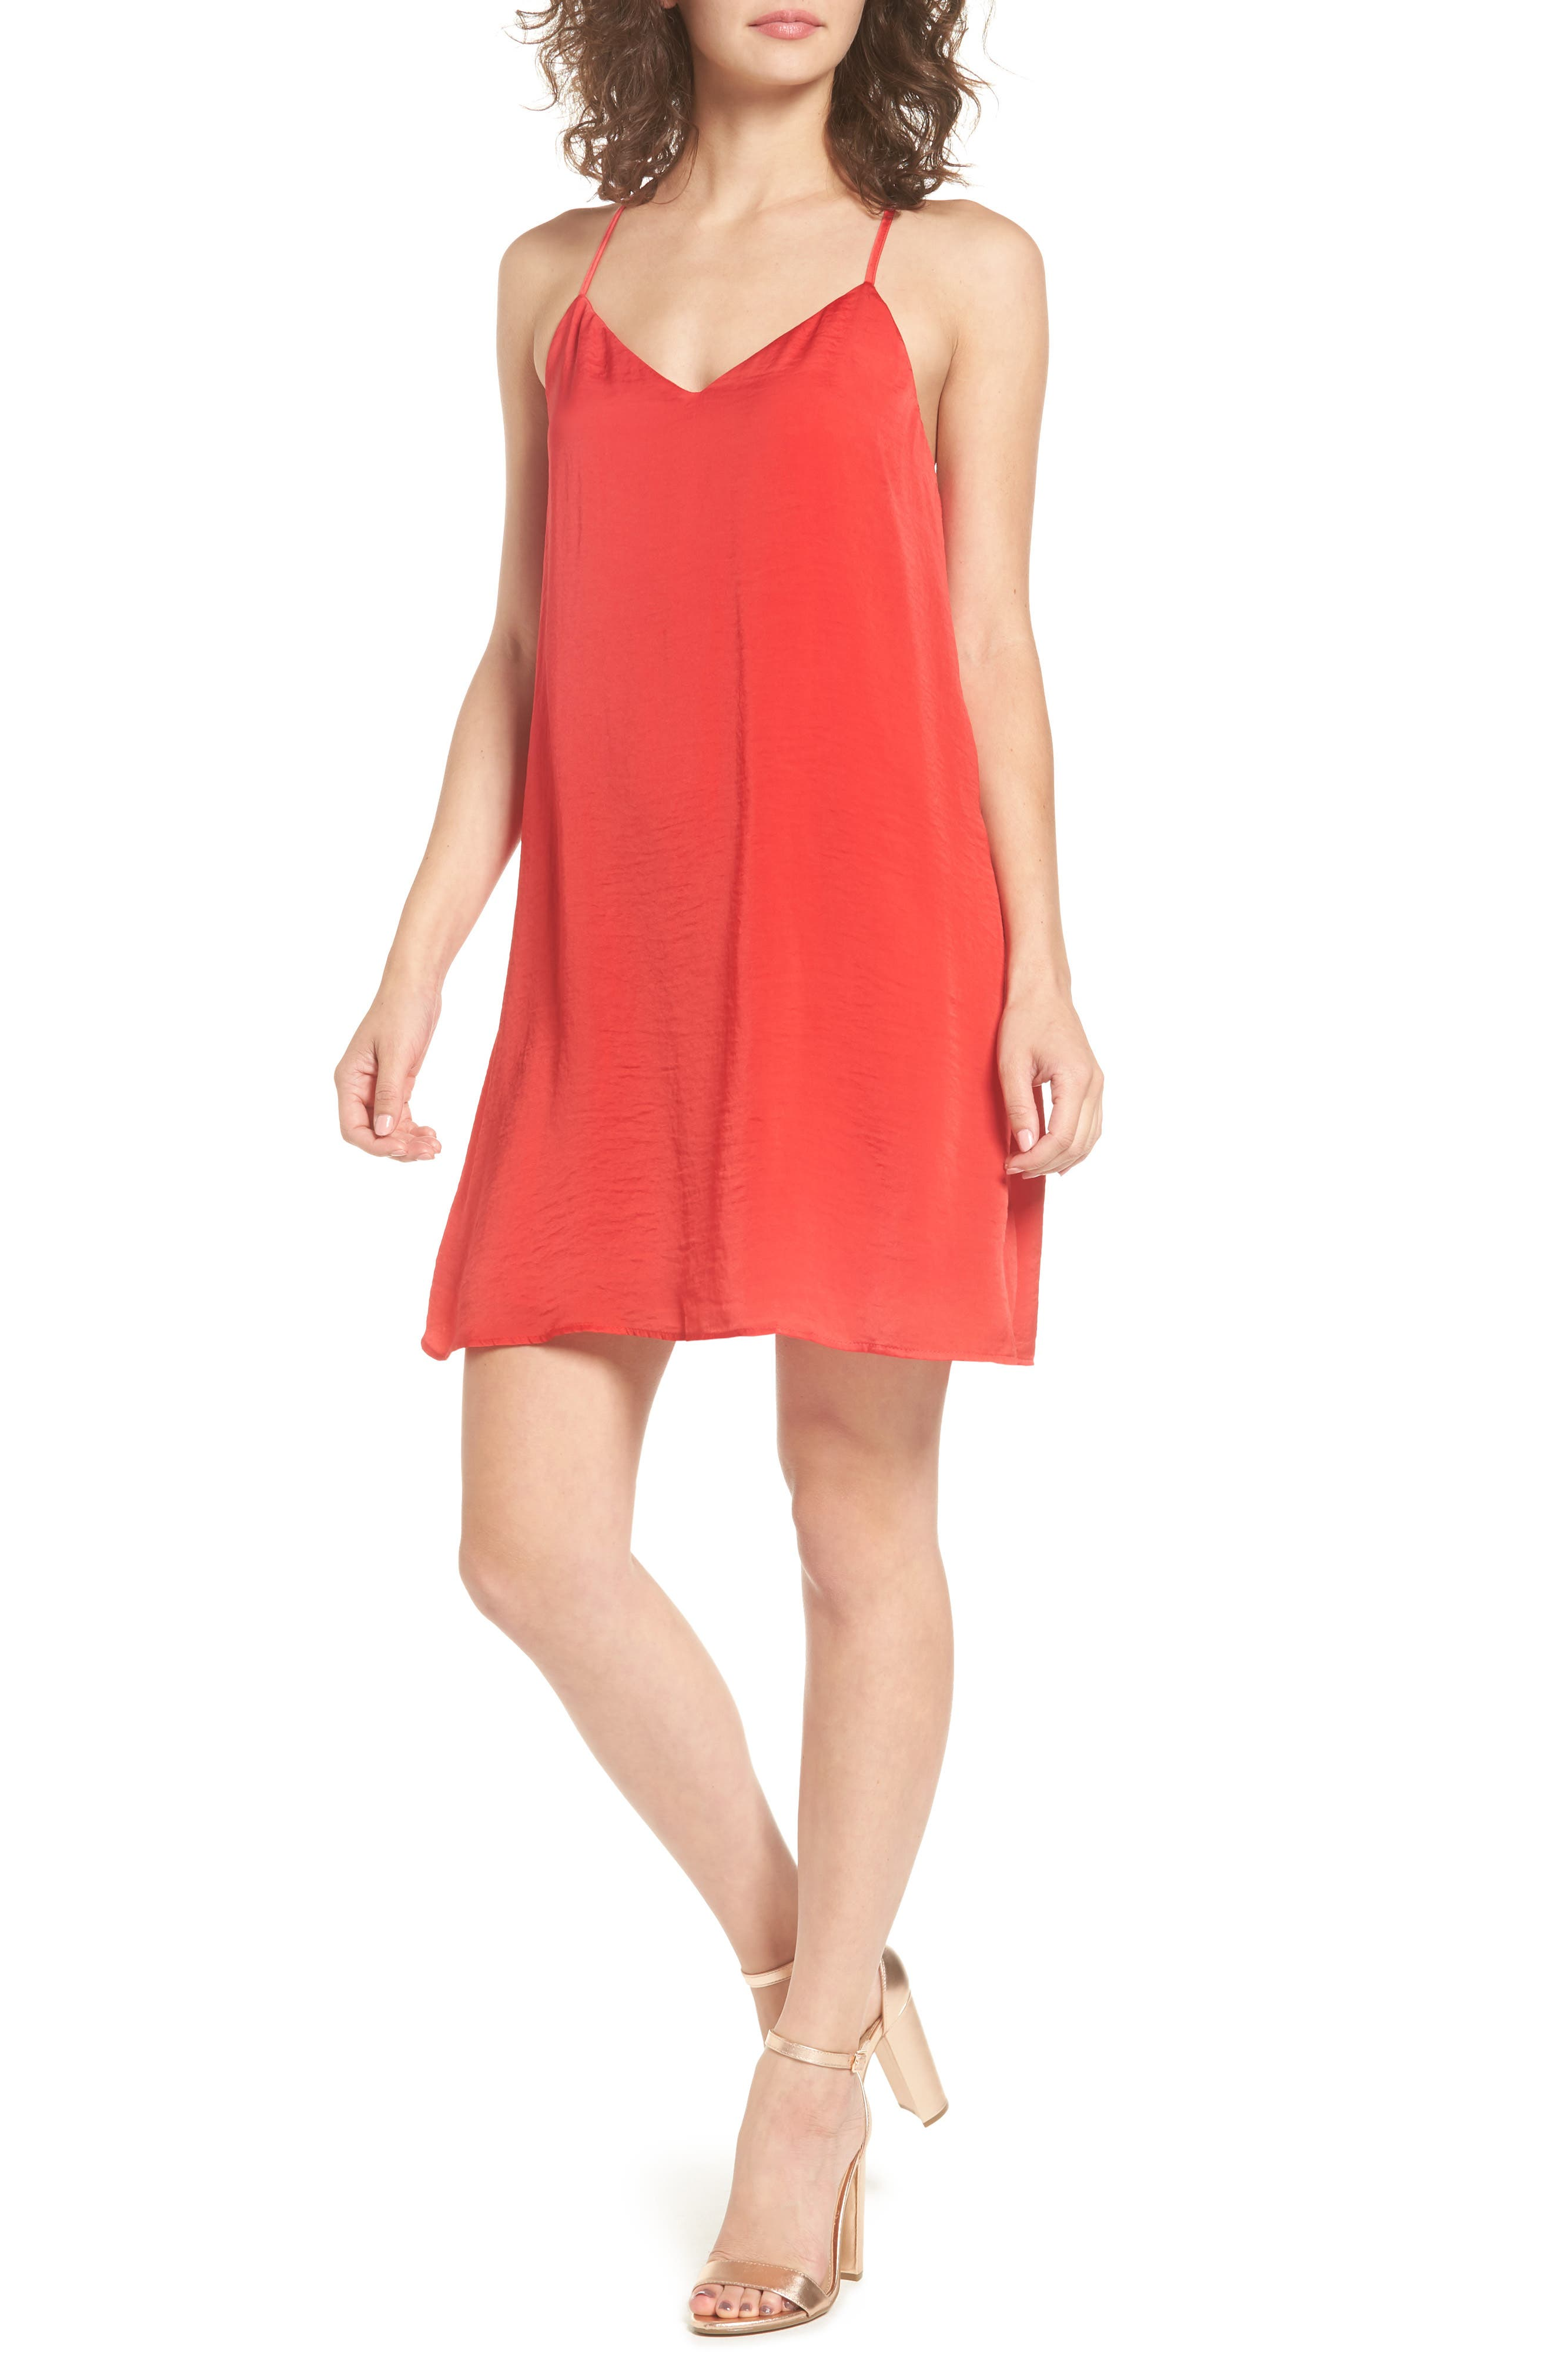 As You Wish Cami Dress,                         Main,                         color, Red